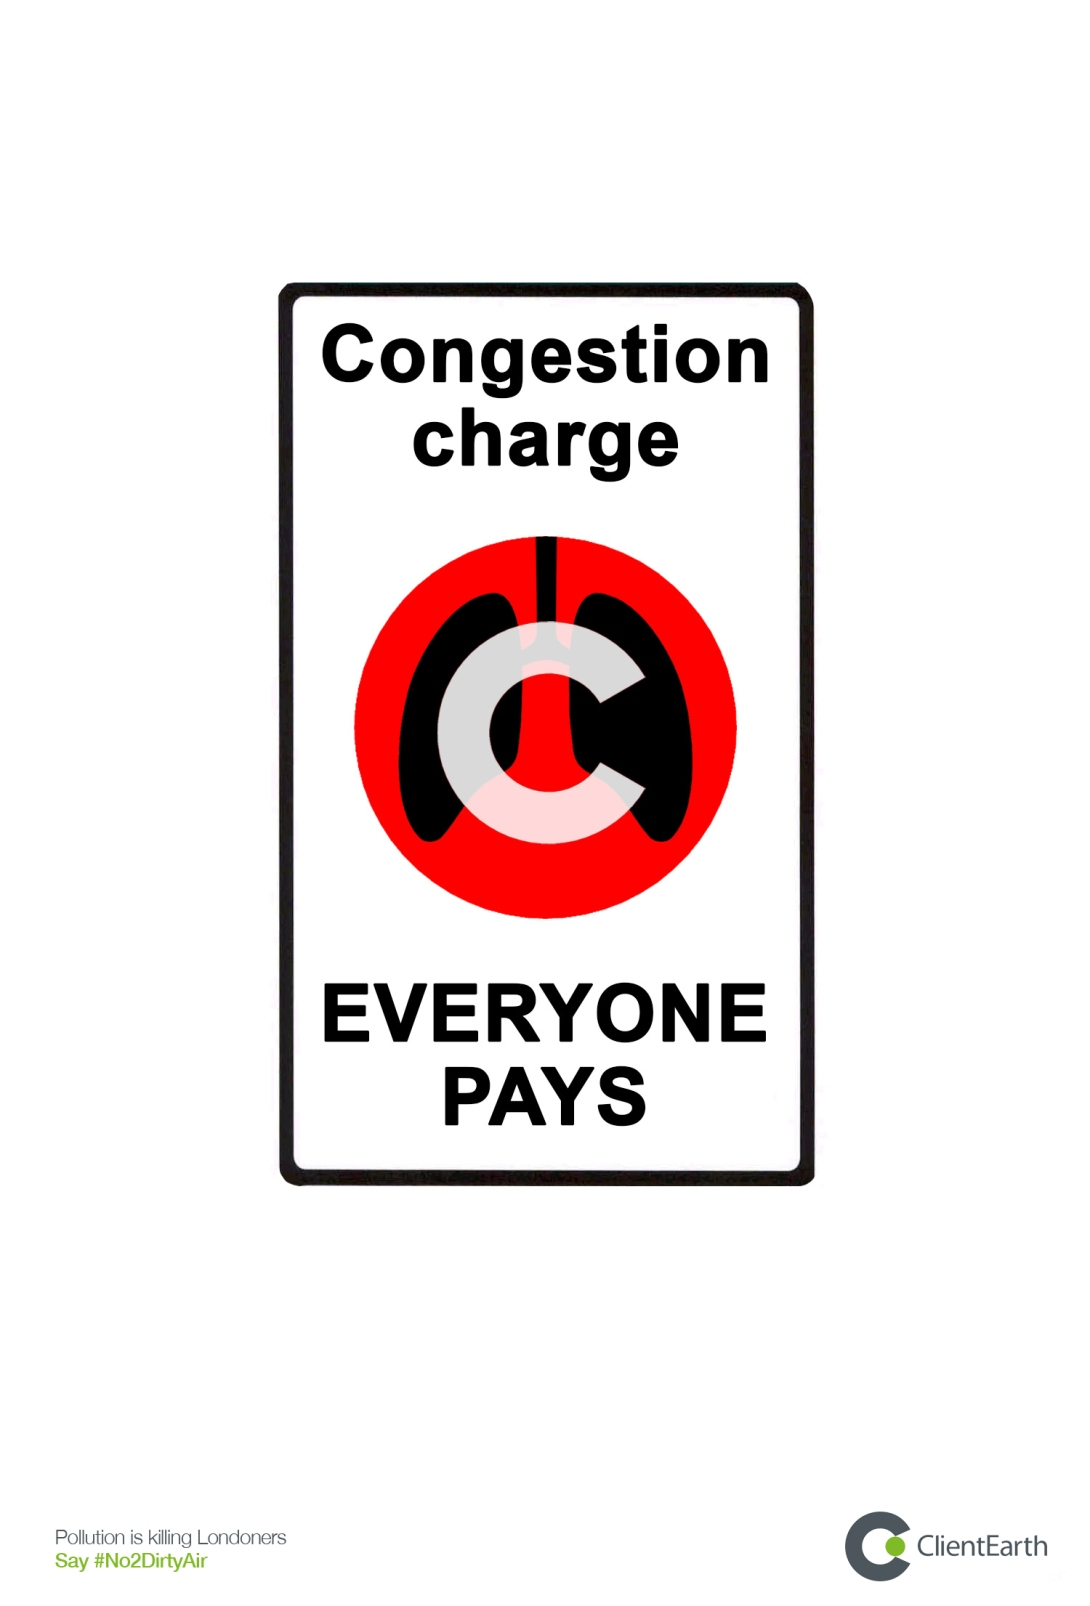 advertising concept to raise awareness of pollution in cities - congestion charge